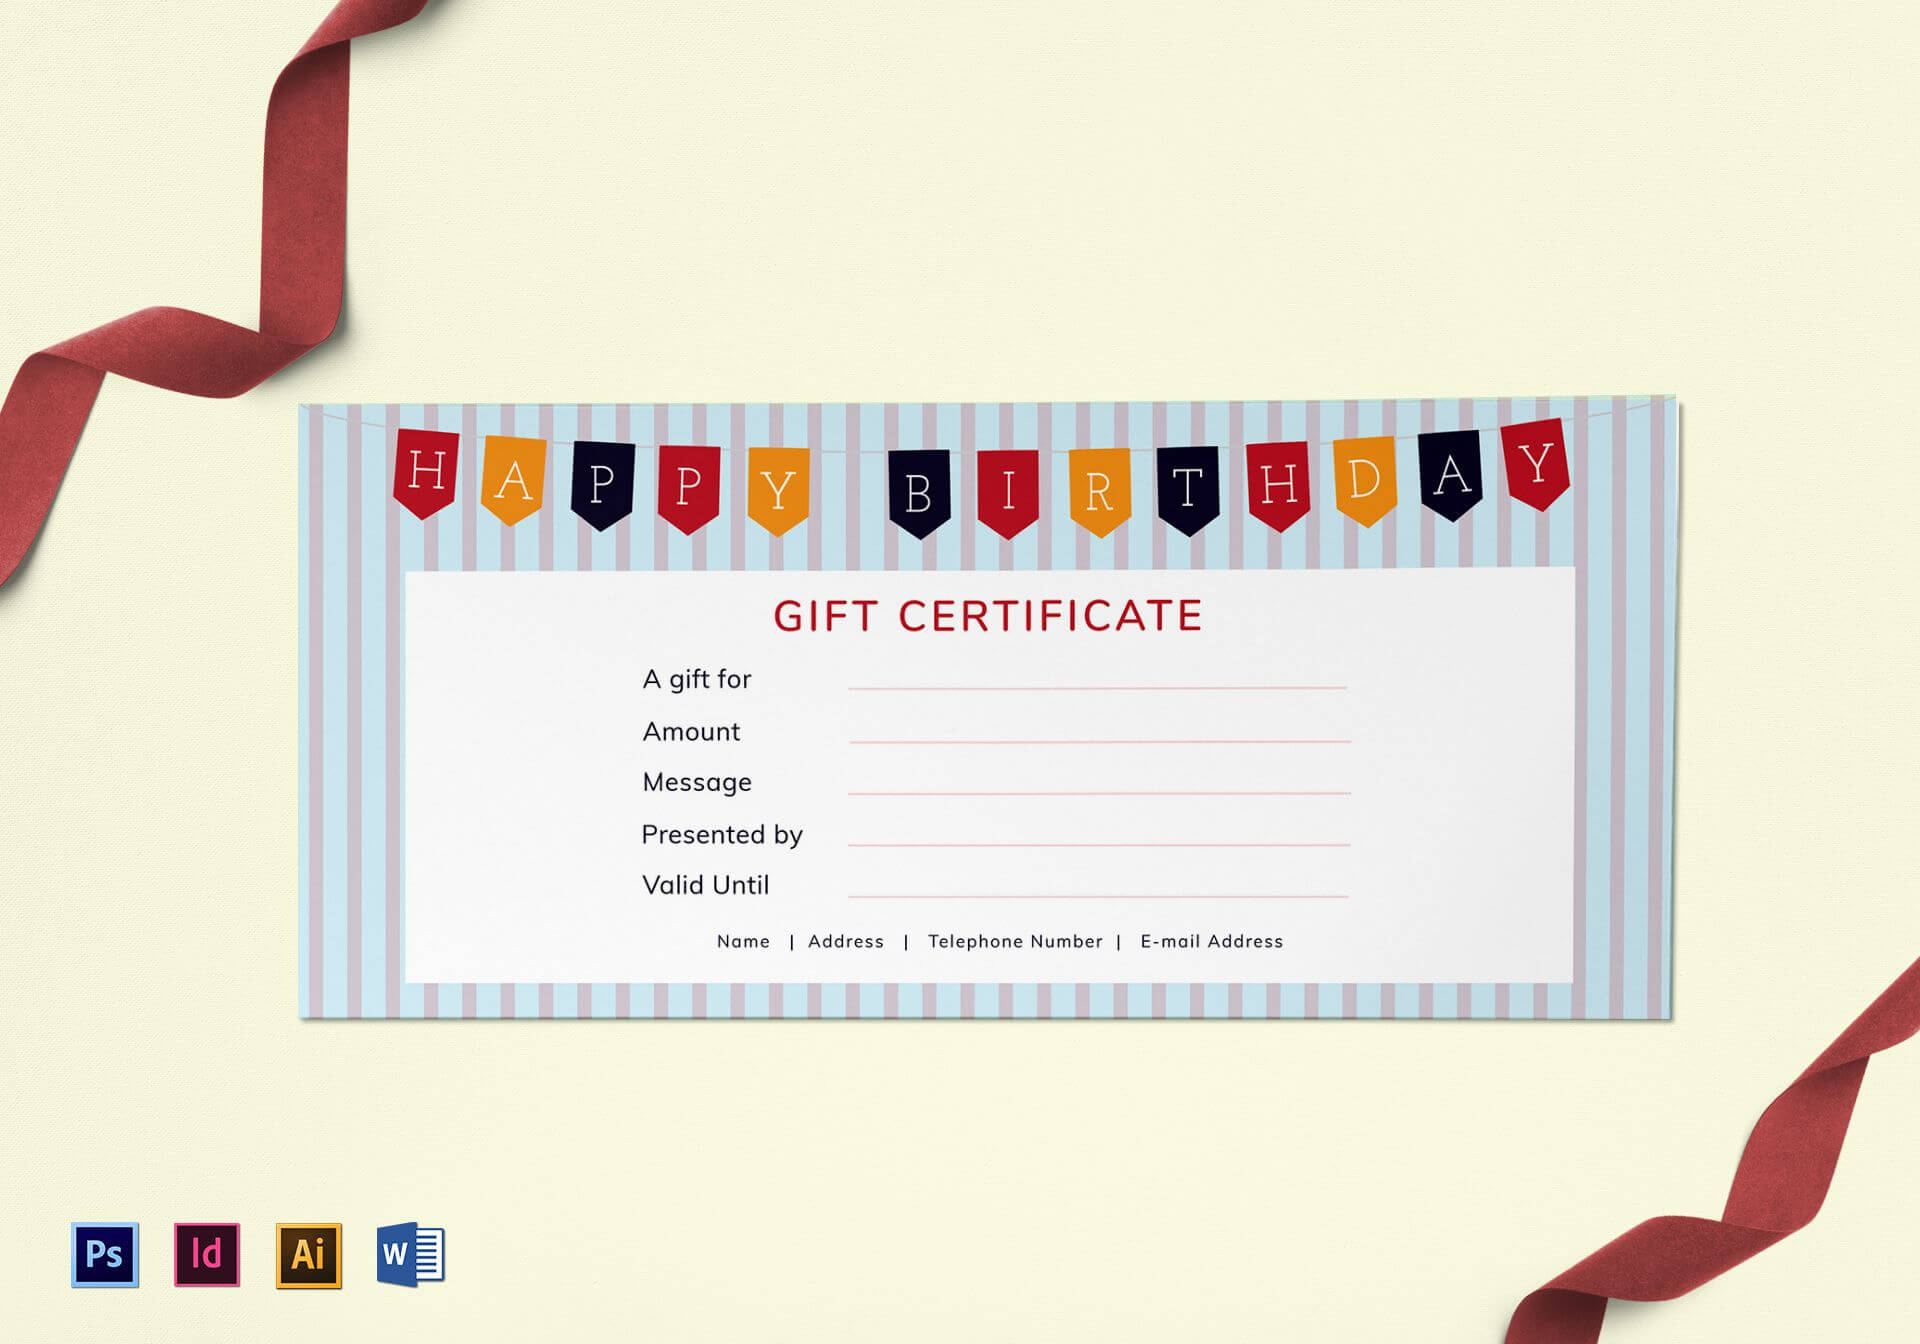 Happy Birthday Gift Certificate Template within Indesign Gift Certificate Template